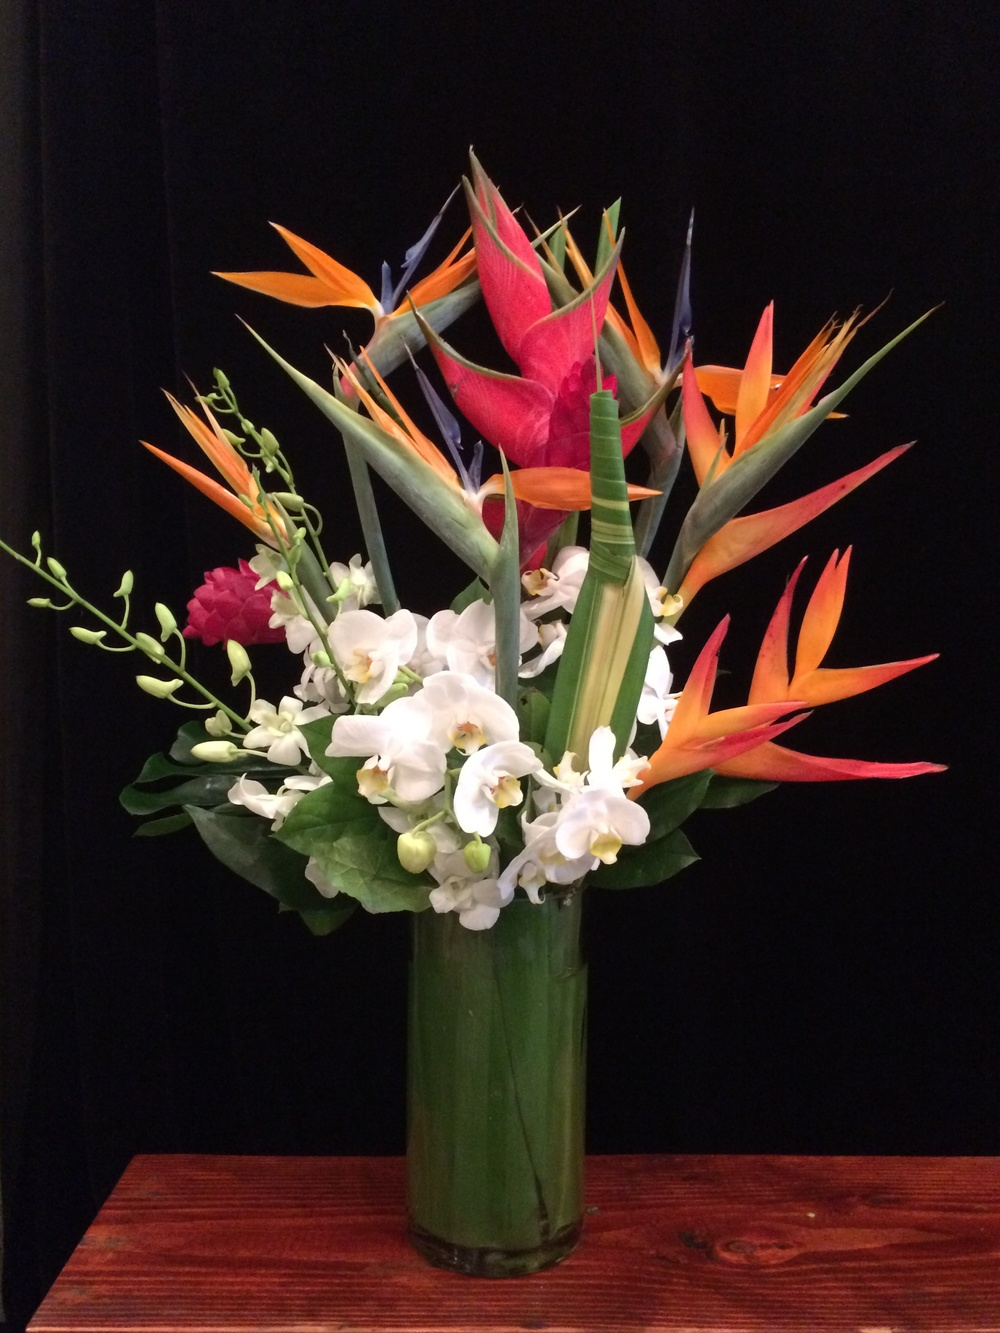 Tropicals with Birds of Paradise, White Phalaenopsis and Dendrobium Orchids